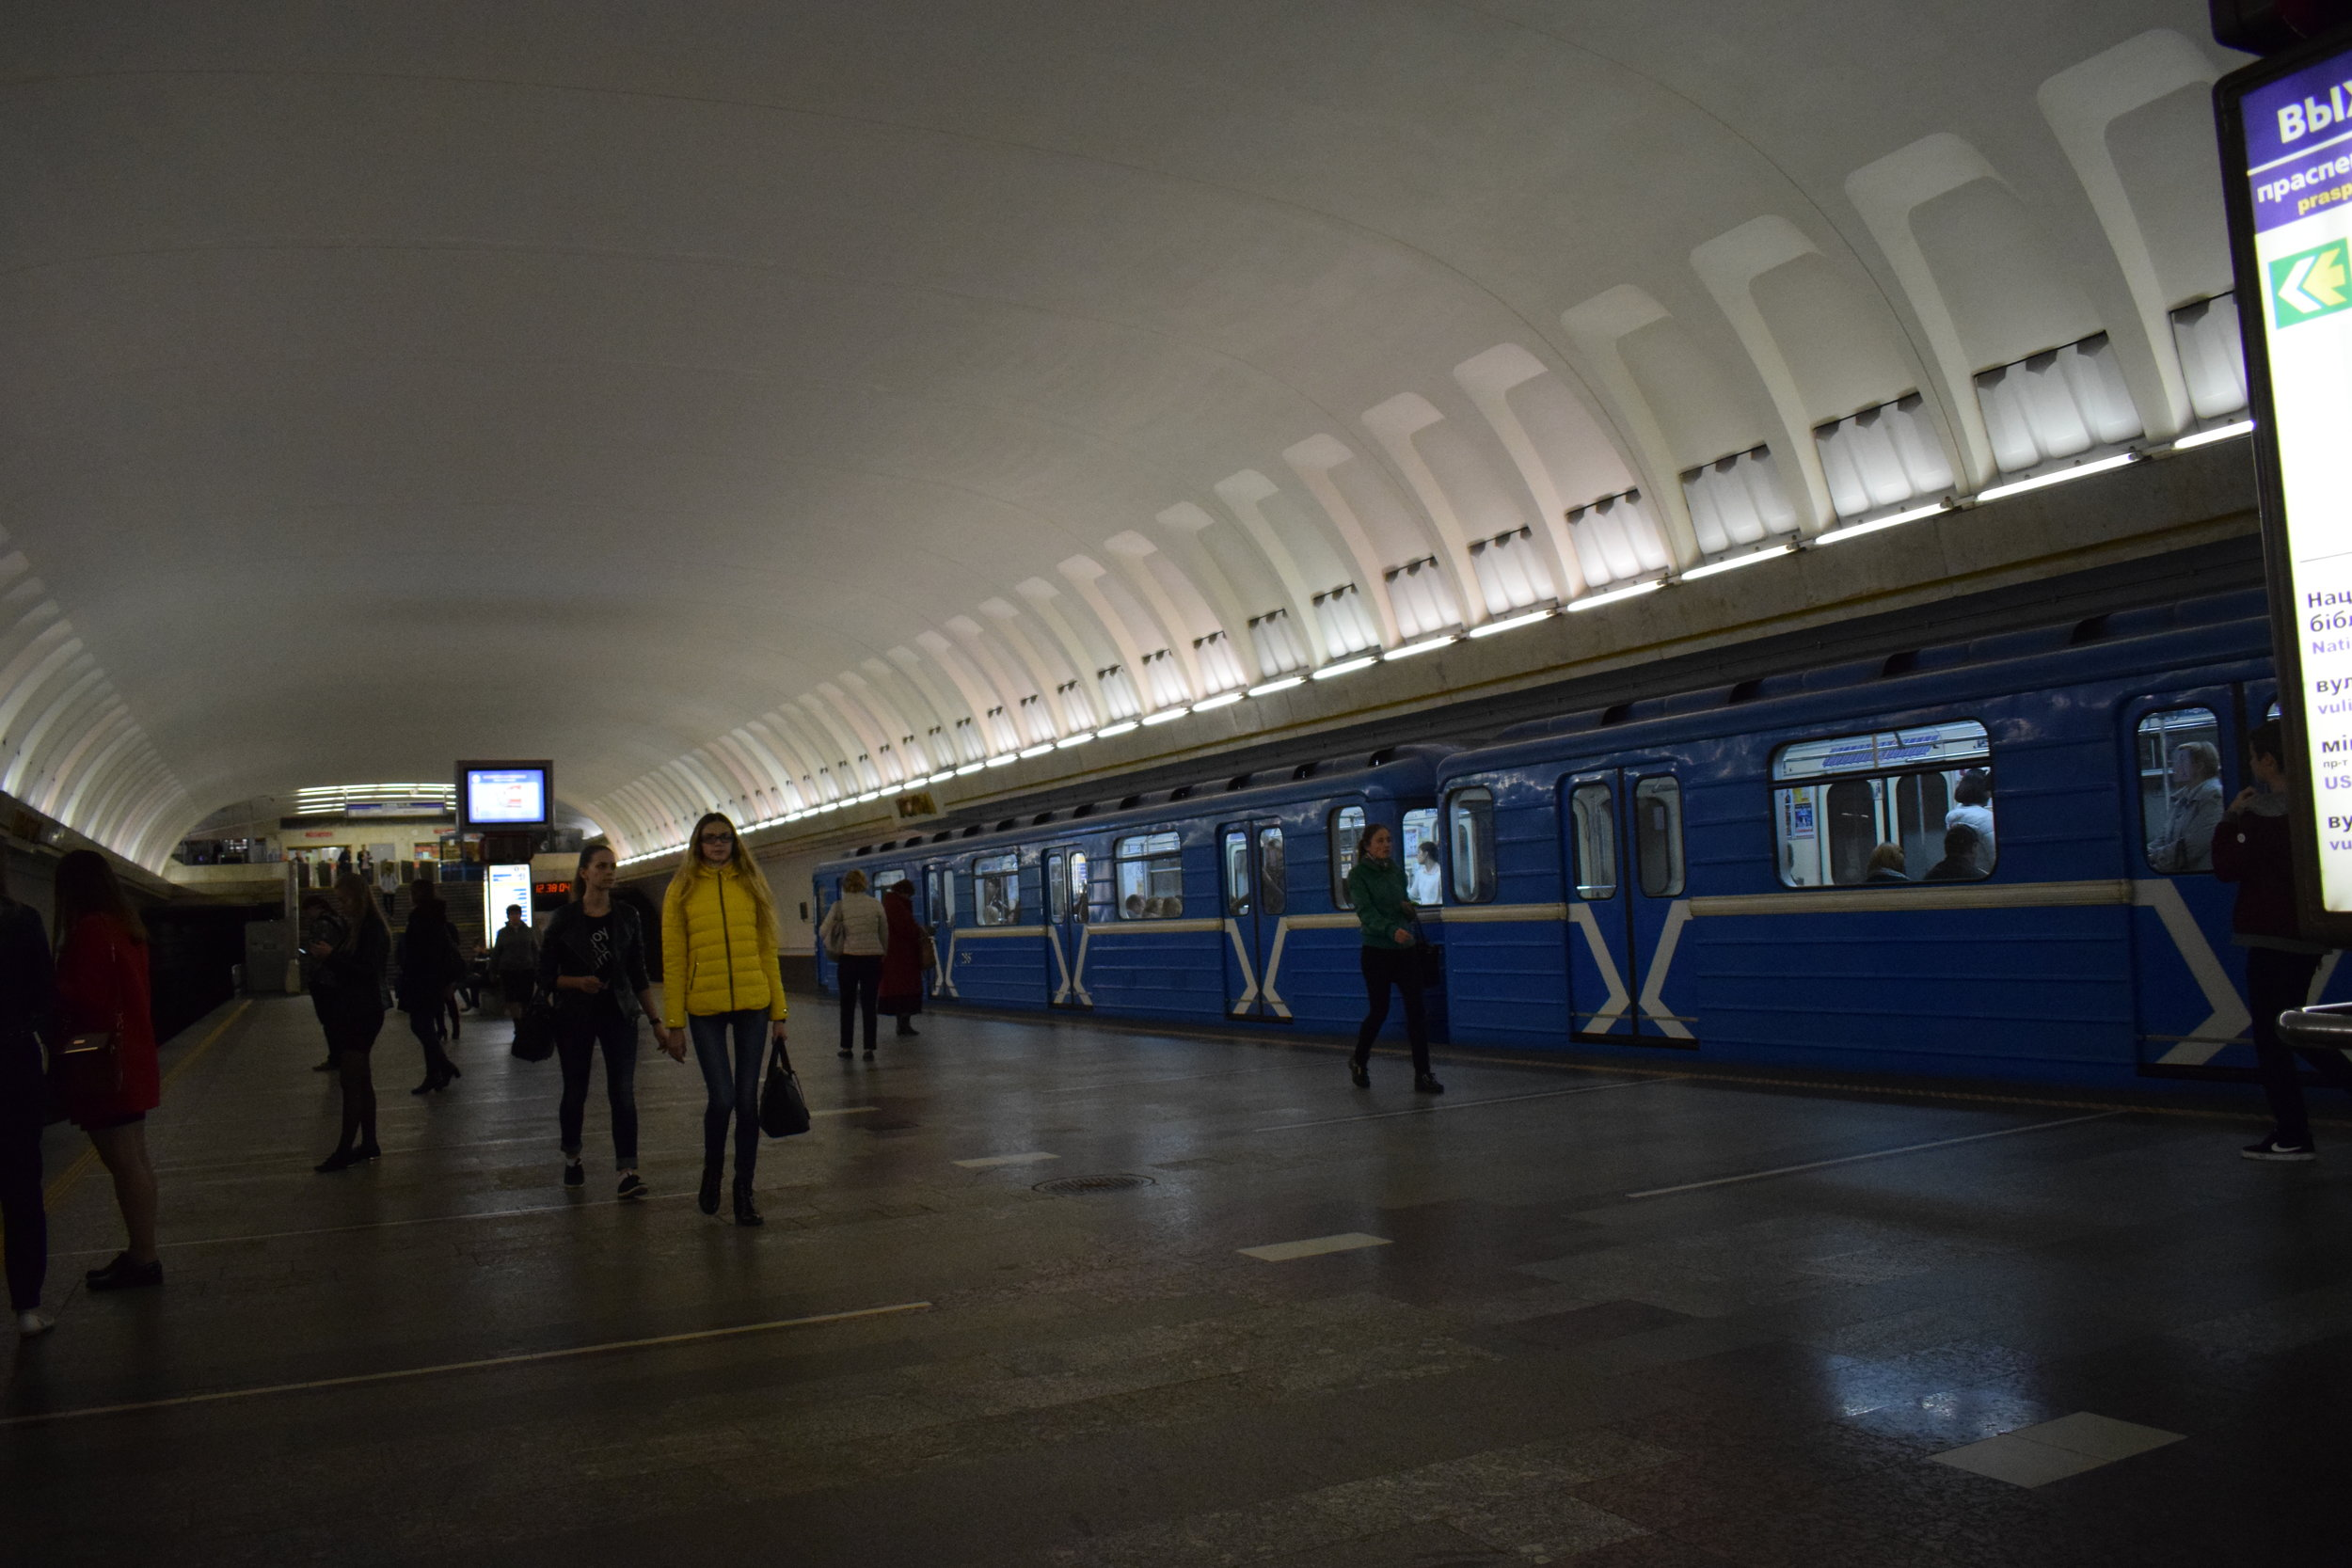 Getting a sneaky snap inside one of Minsk's Metro stations.